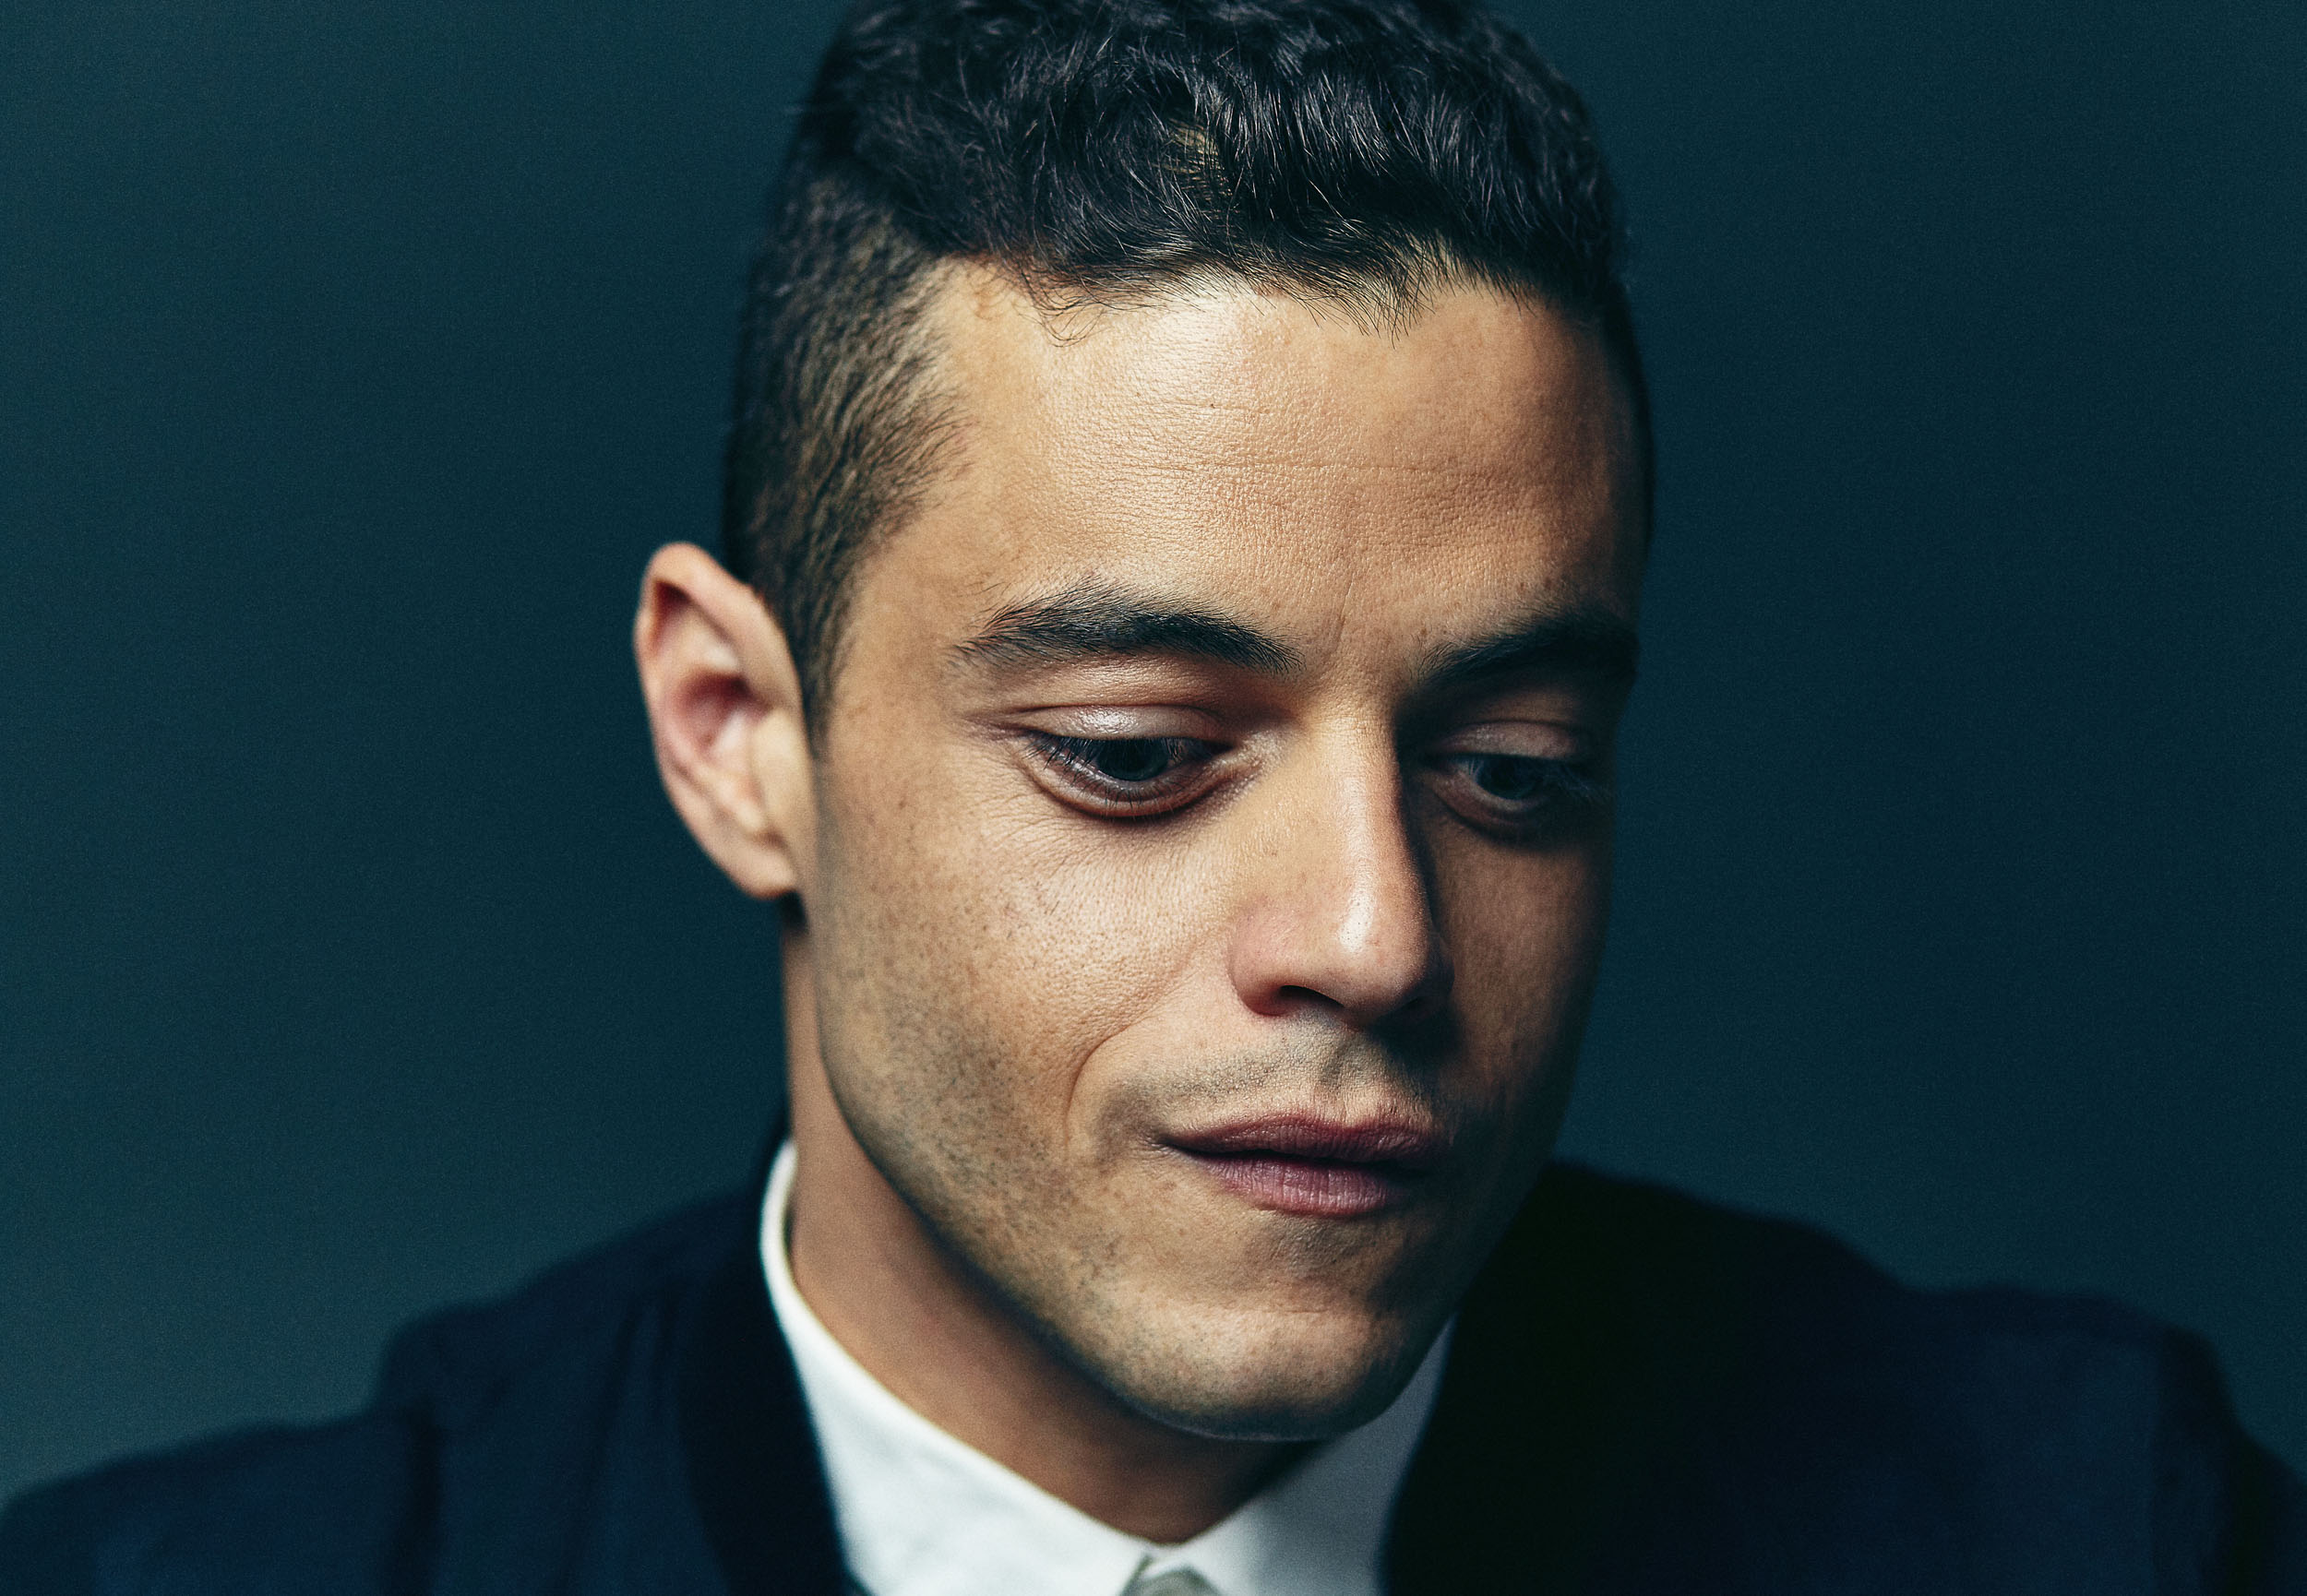 20150820_MrRobot-0651_WEB_NEW